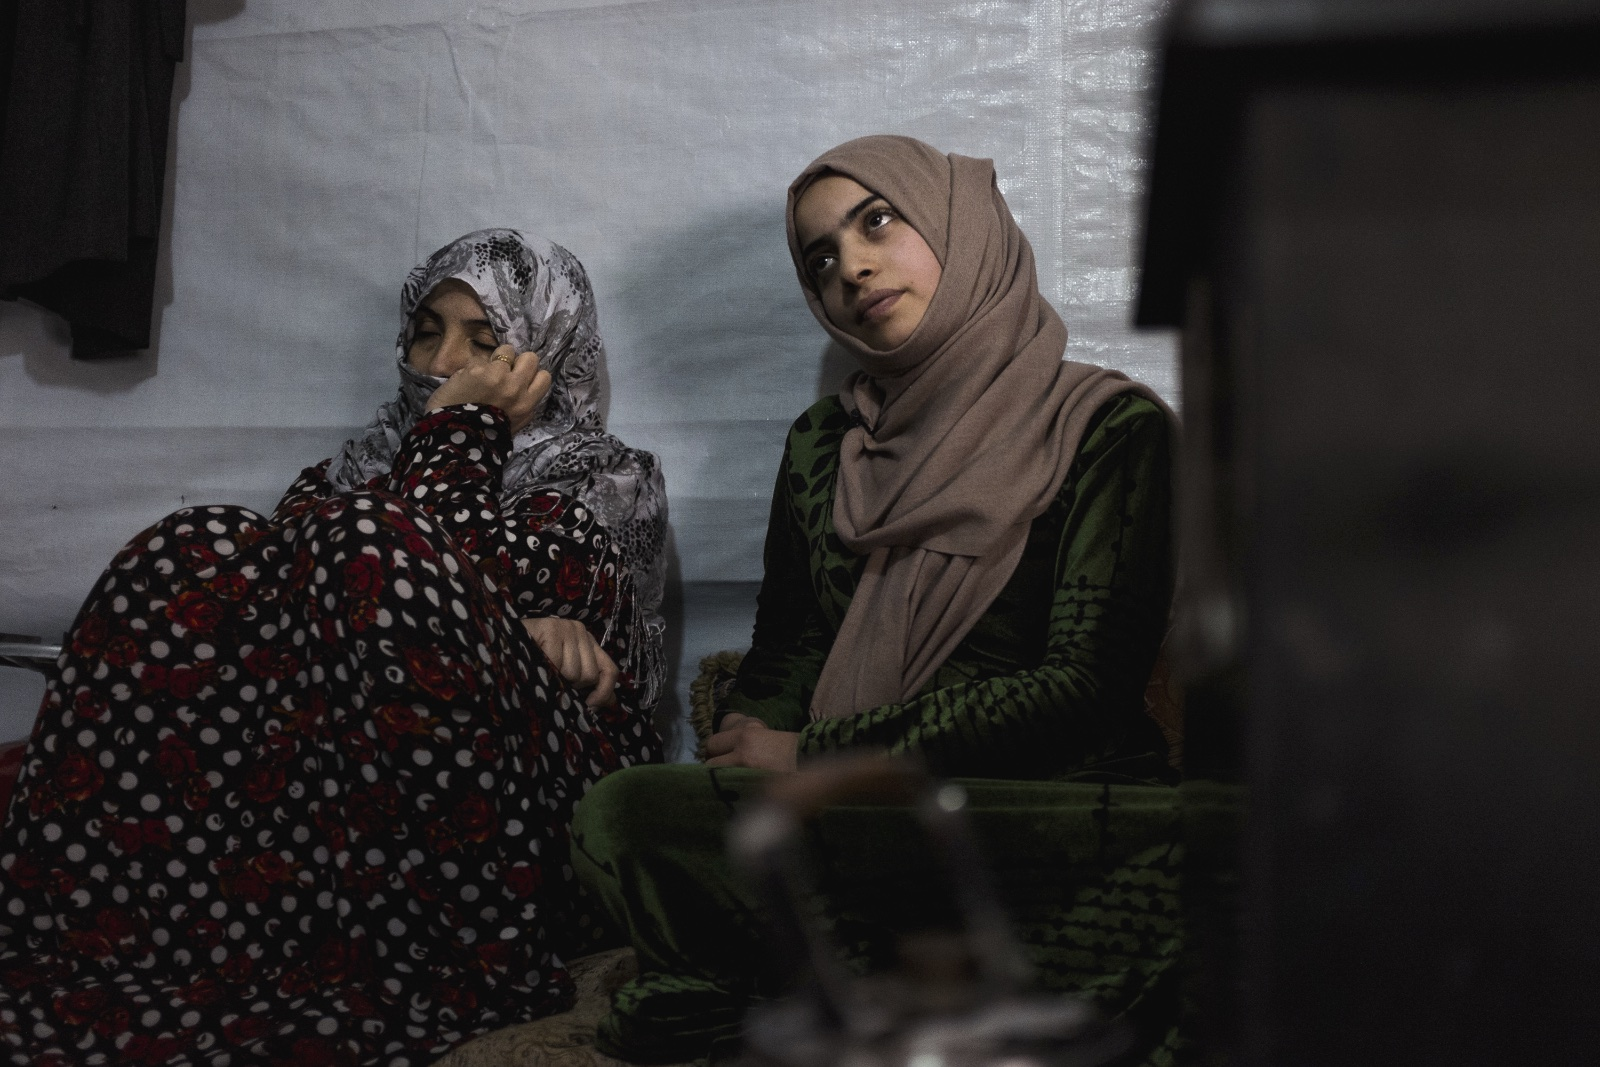 Batoul (right), 15, sits with her mother, Um Mohammad (left), in their improvised tent settlement. Batoul's family got her married off when she was 13 out of fear for her safety. However, her husband has been physically and emotionally abusive and does not allow her any freedoms. (Christopher Lee/GroundTruth)